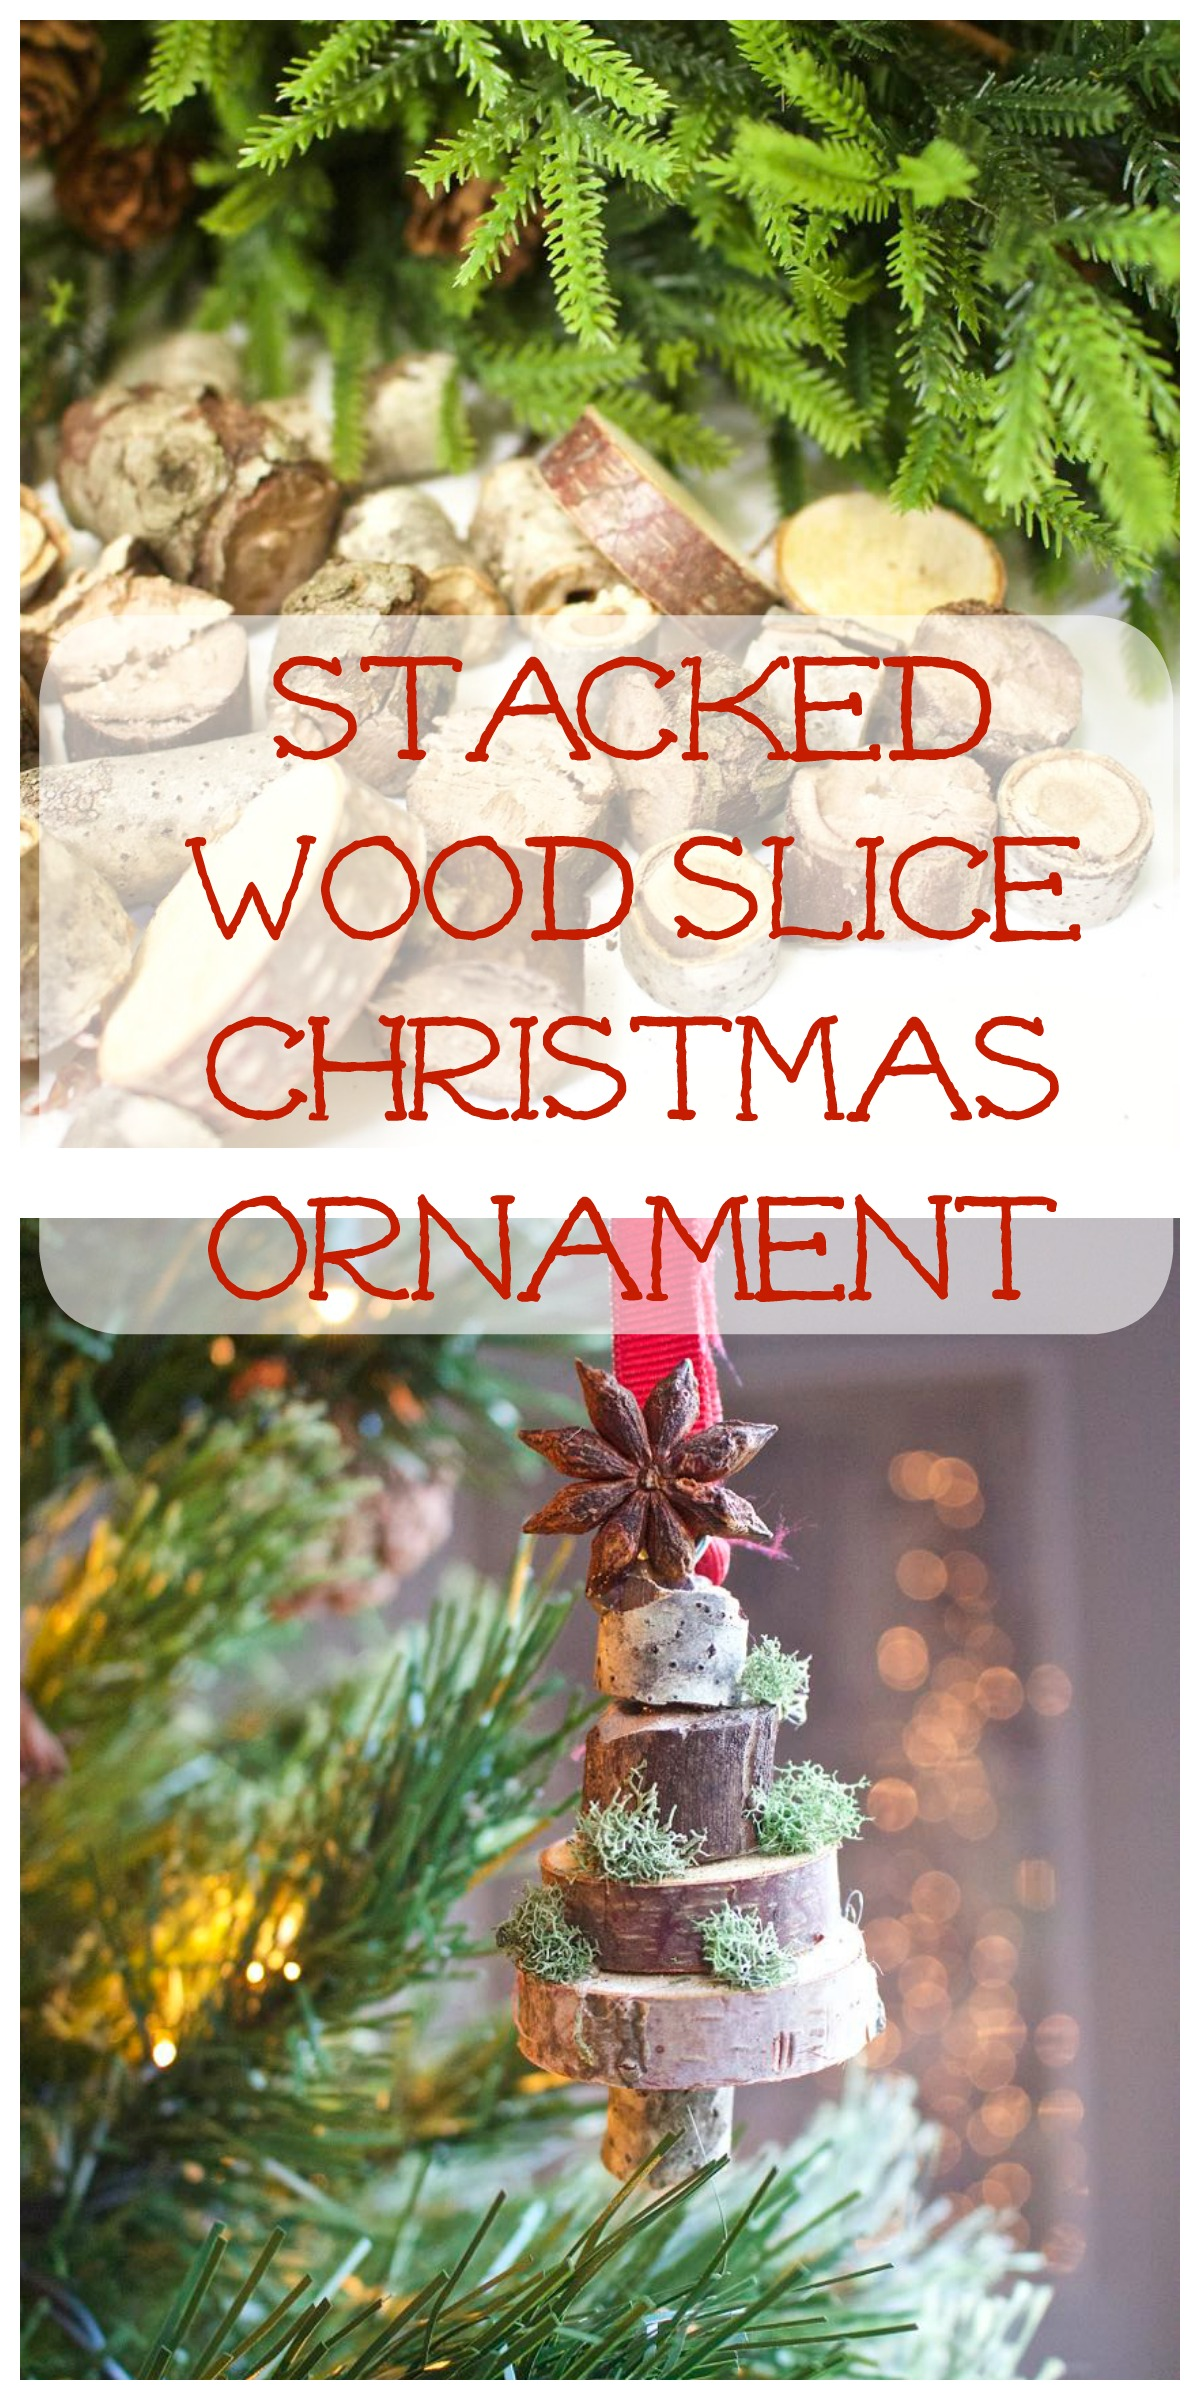 Stacked Wood Slice Ornament Collage